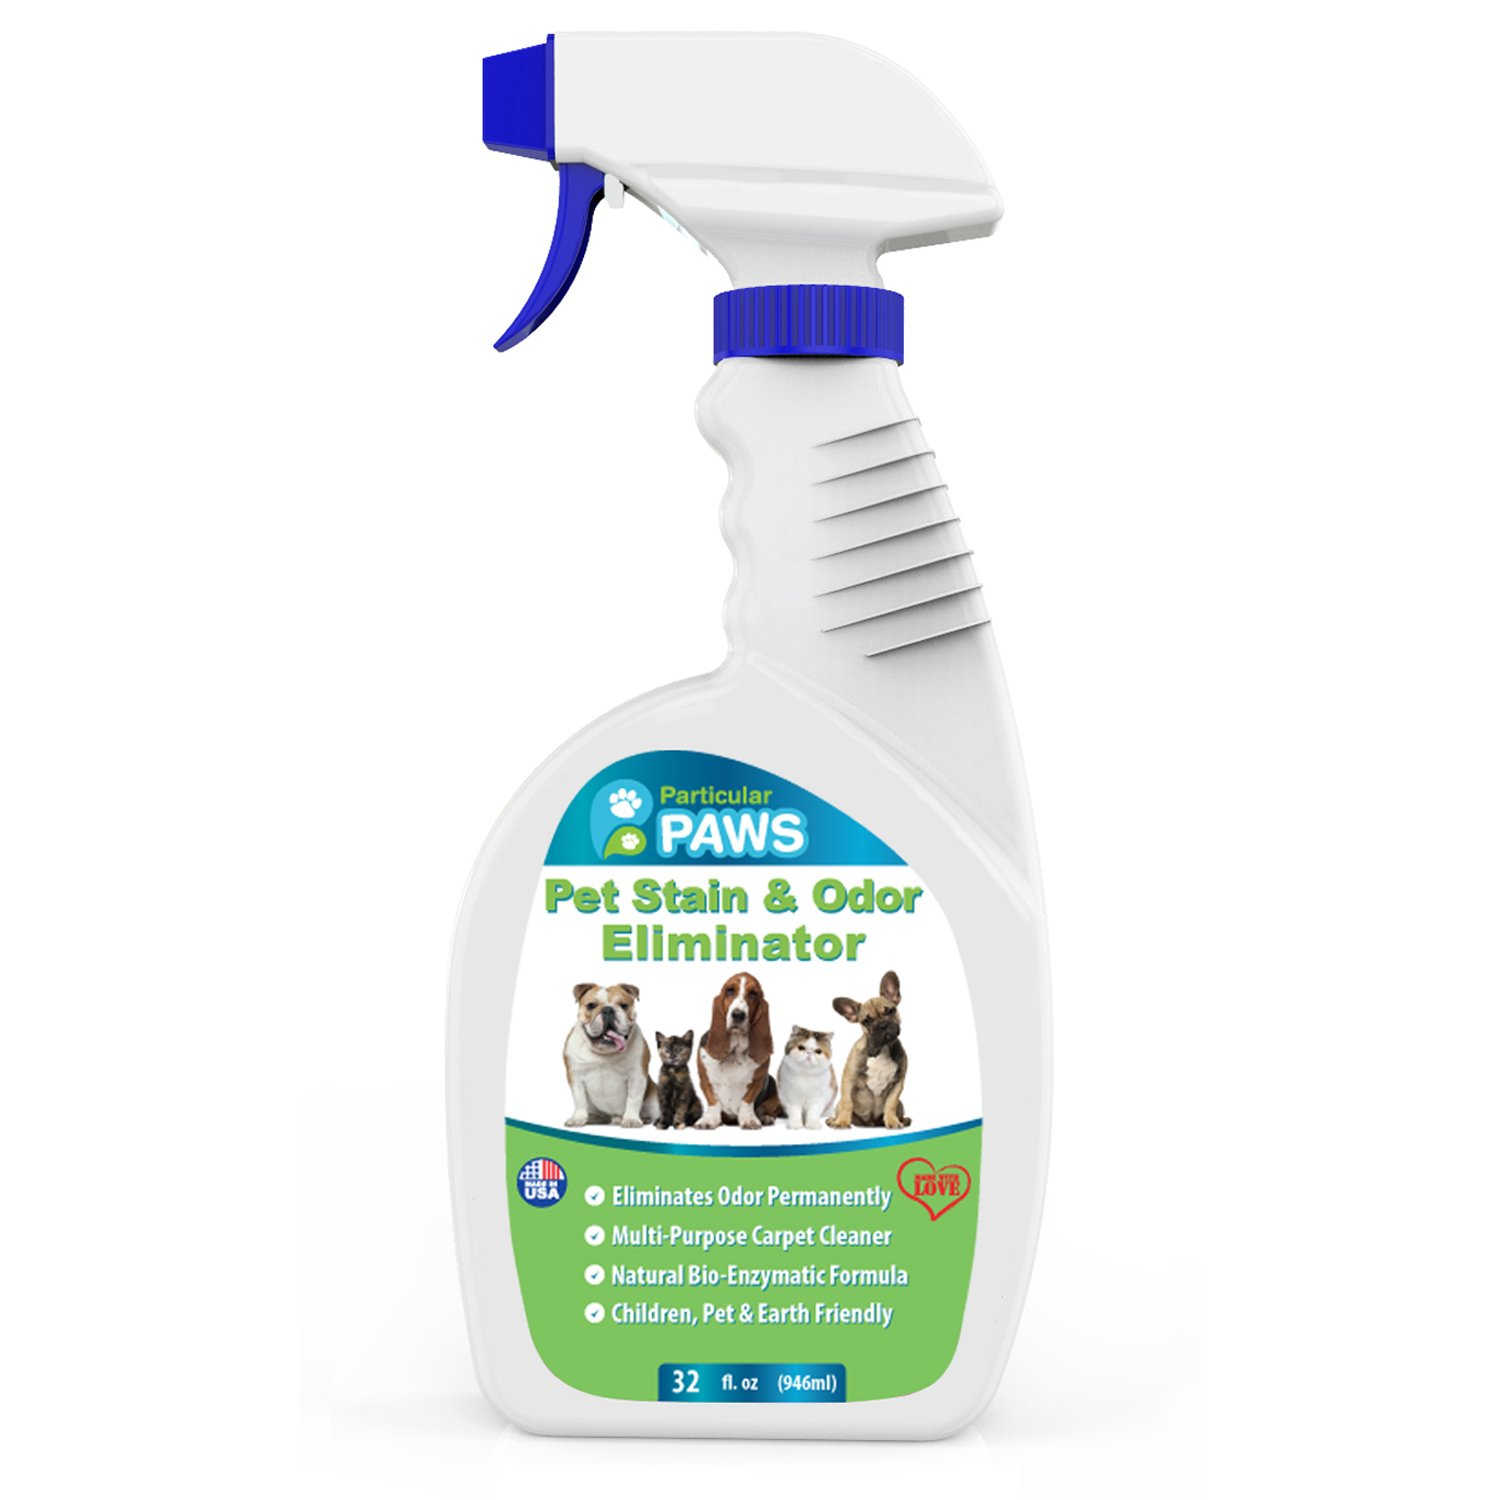 Particular Paws Pet Stain and Odor Remover - Professional Strength Triple Action Enzyme Spray Eliminates Dog and Cat Urine Stains and Smells - 32 oz by Particular Paws